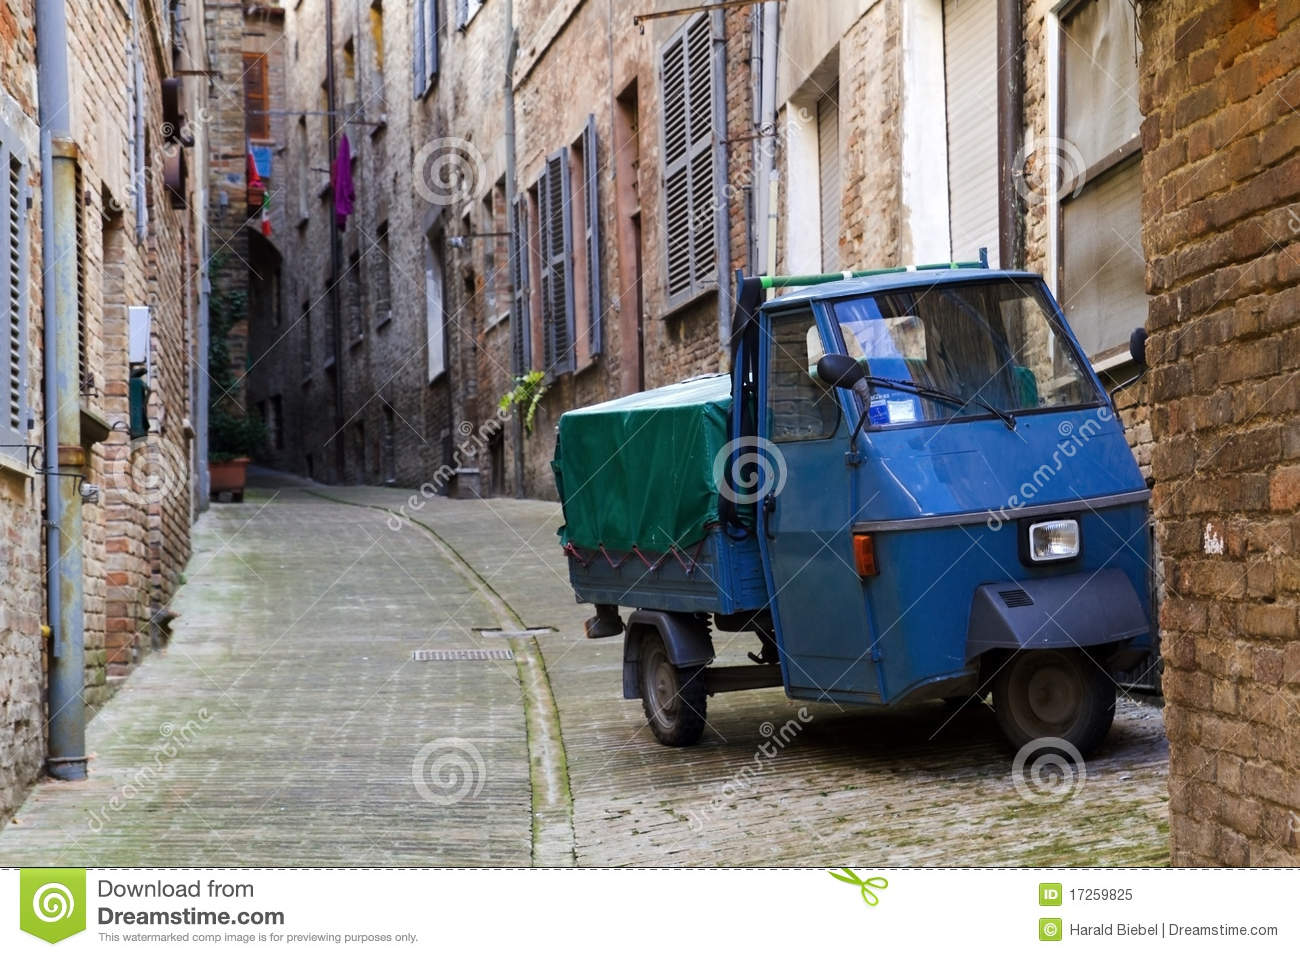 Three Wheeler in an alley in central Italy